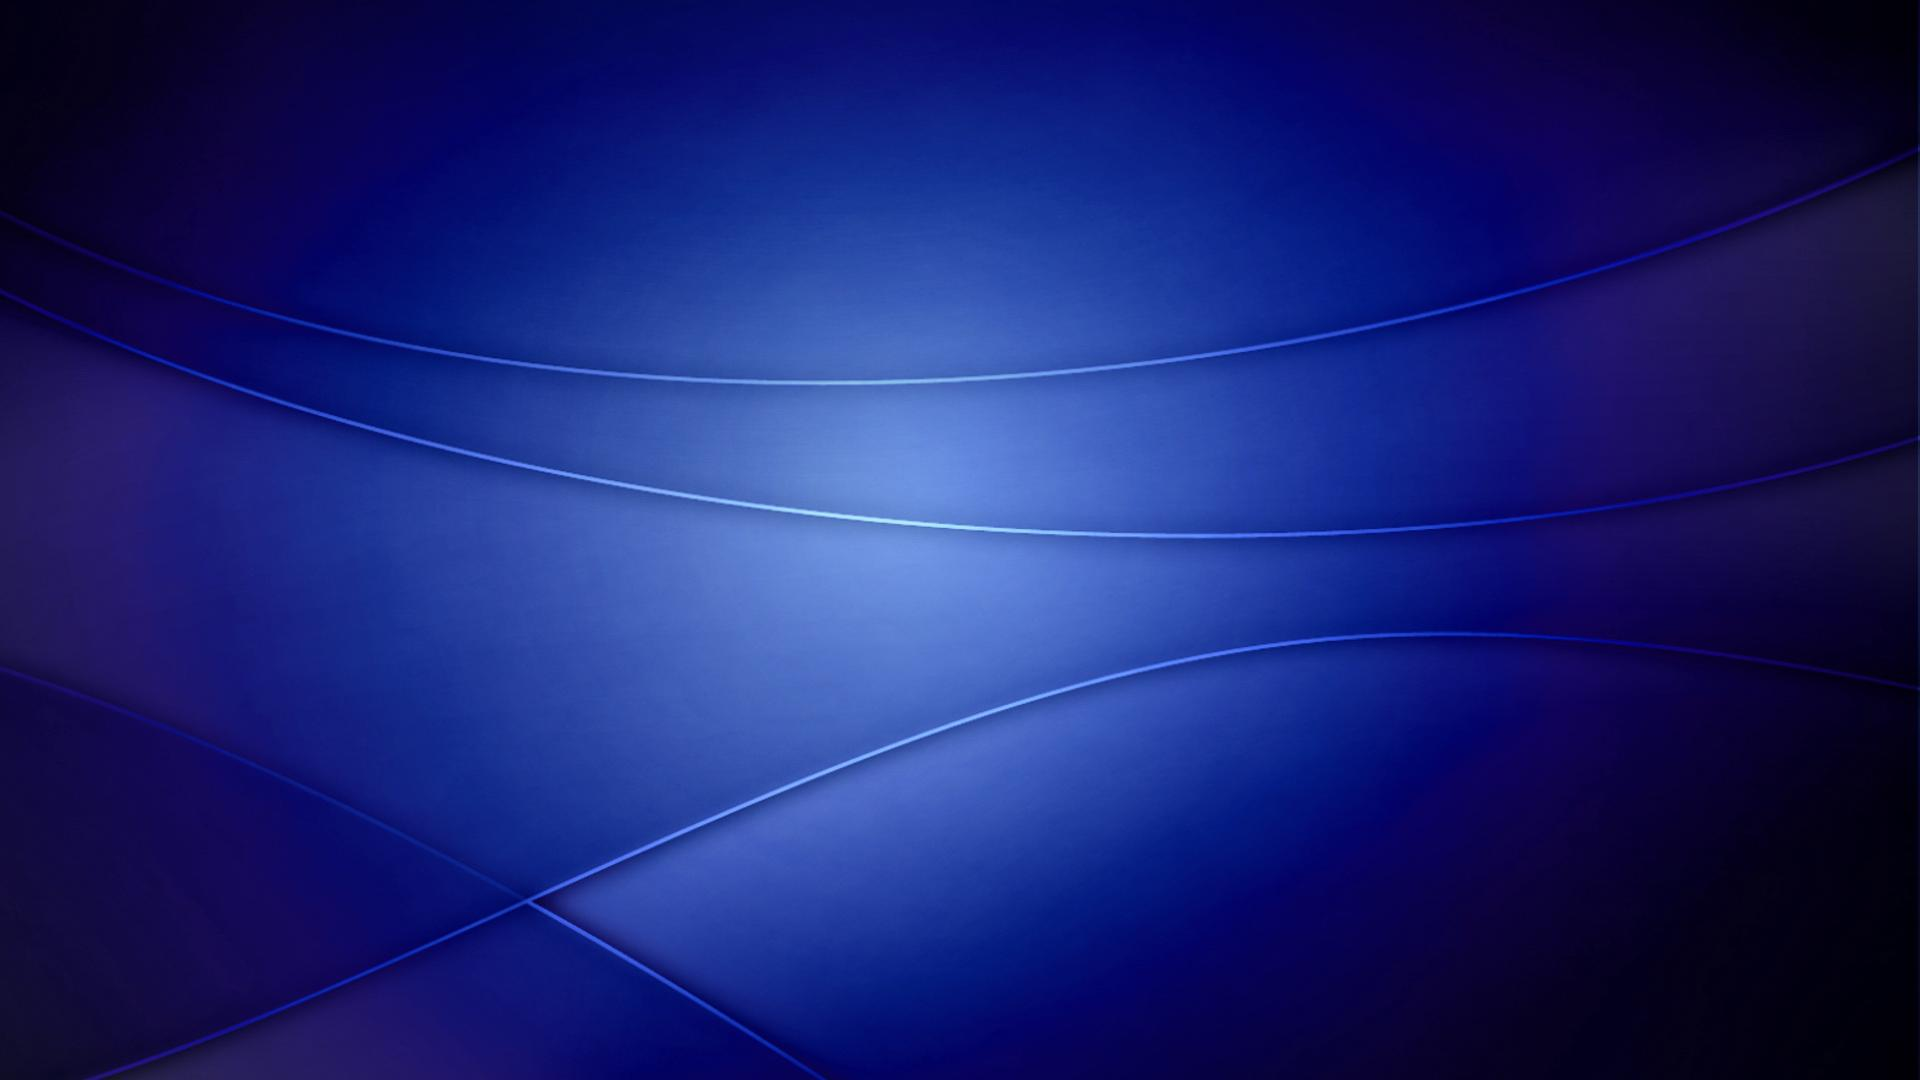 Blue Background Wallpapers Iphone Hd For Android Background 1920x1080